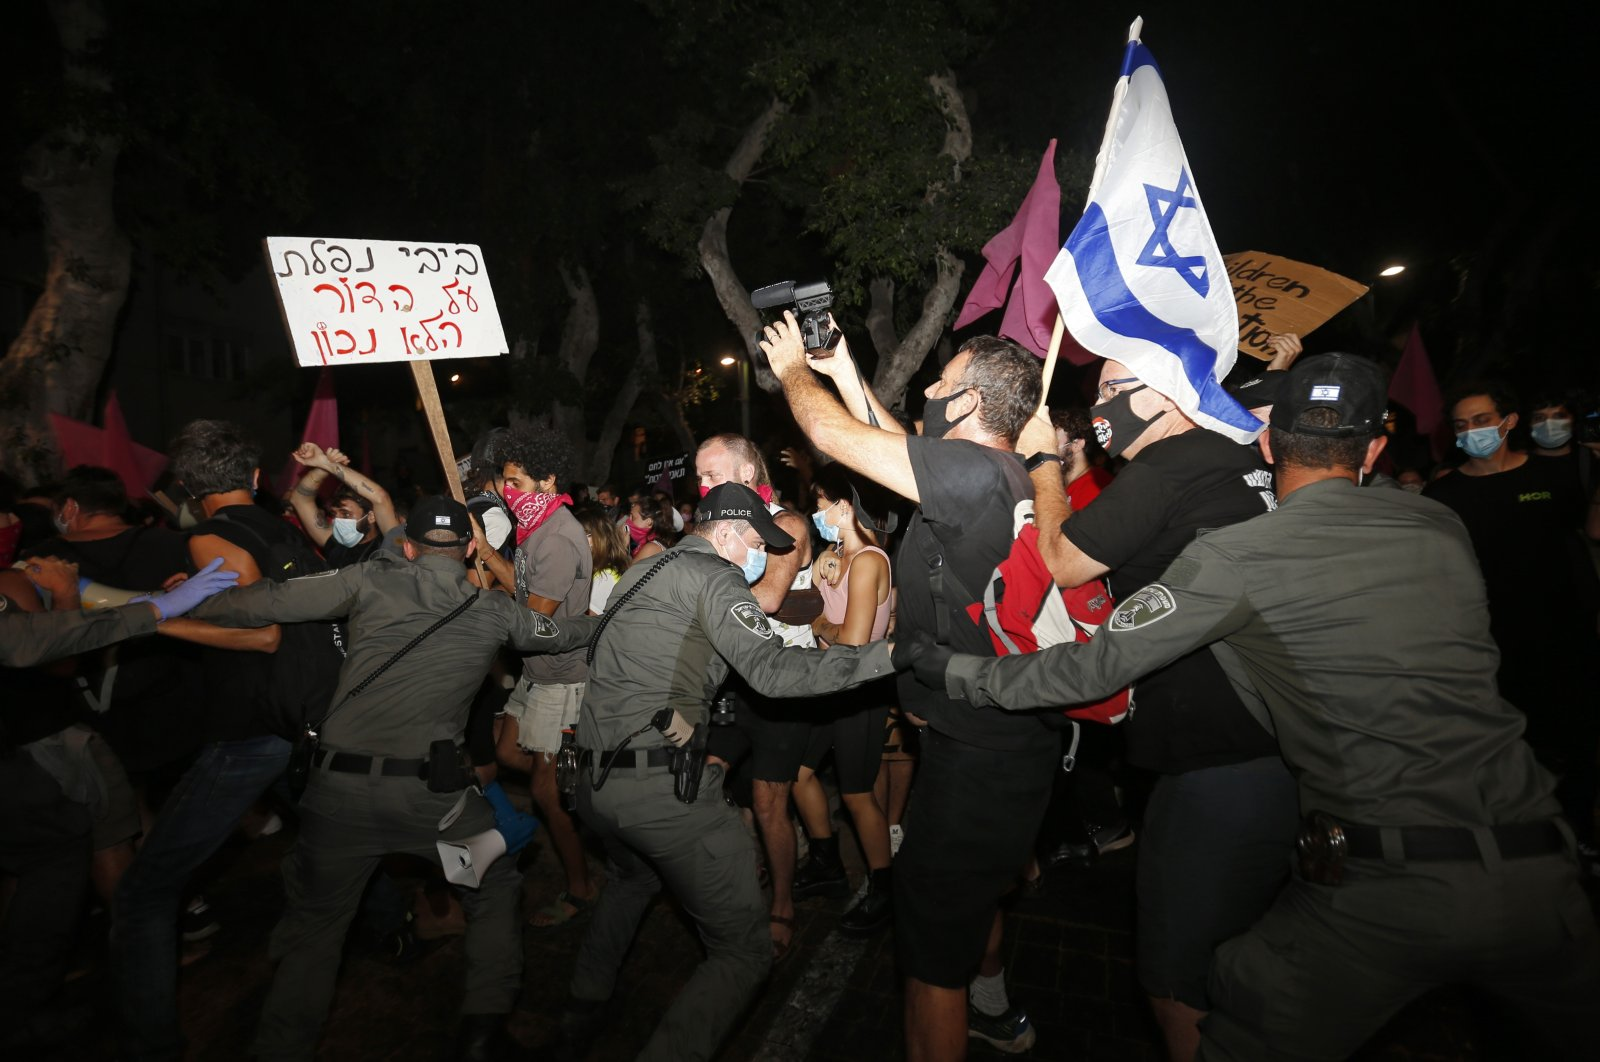 Israeli police scuffle with protesters during a demonstration against Prime Minister Benjamin Netanyahu in Tel Aviv, Israel, Oct. 6, 2020. (AP Photo)